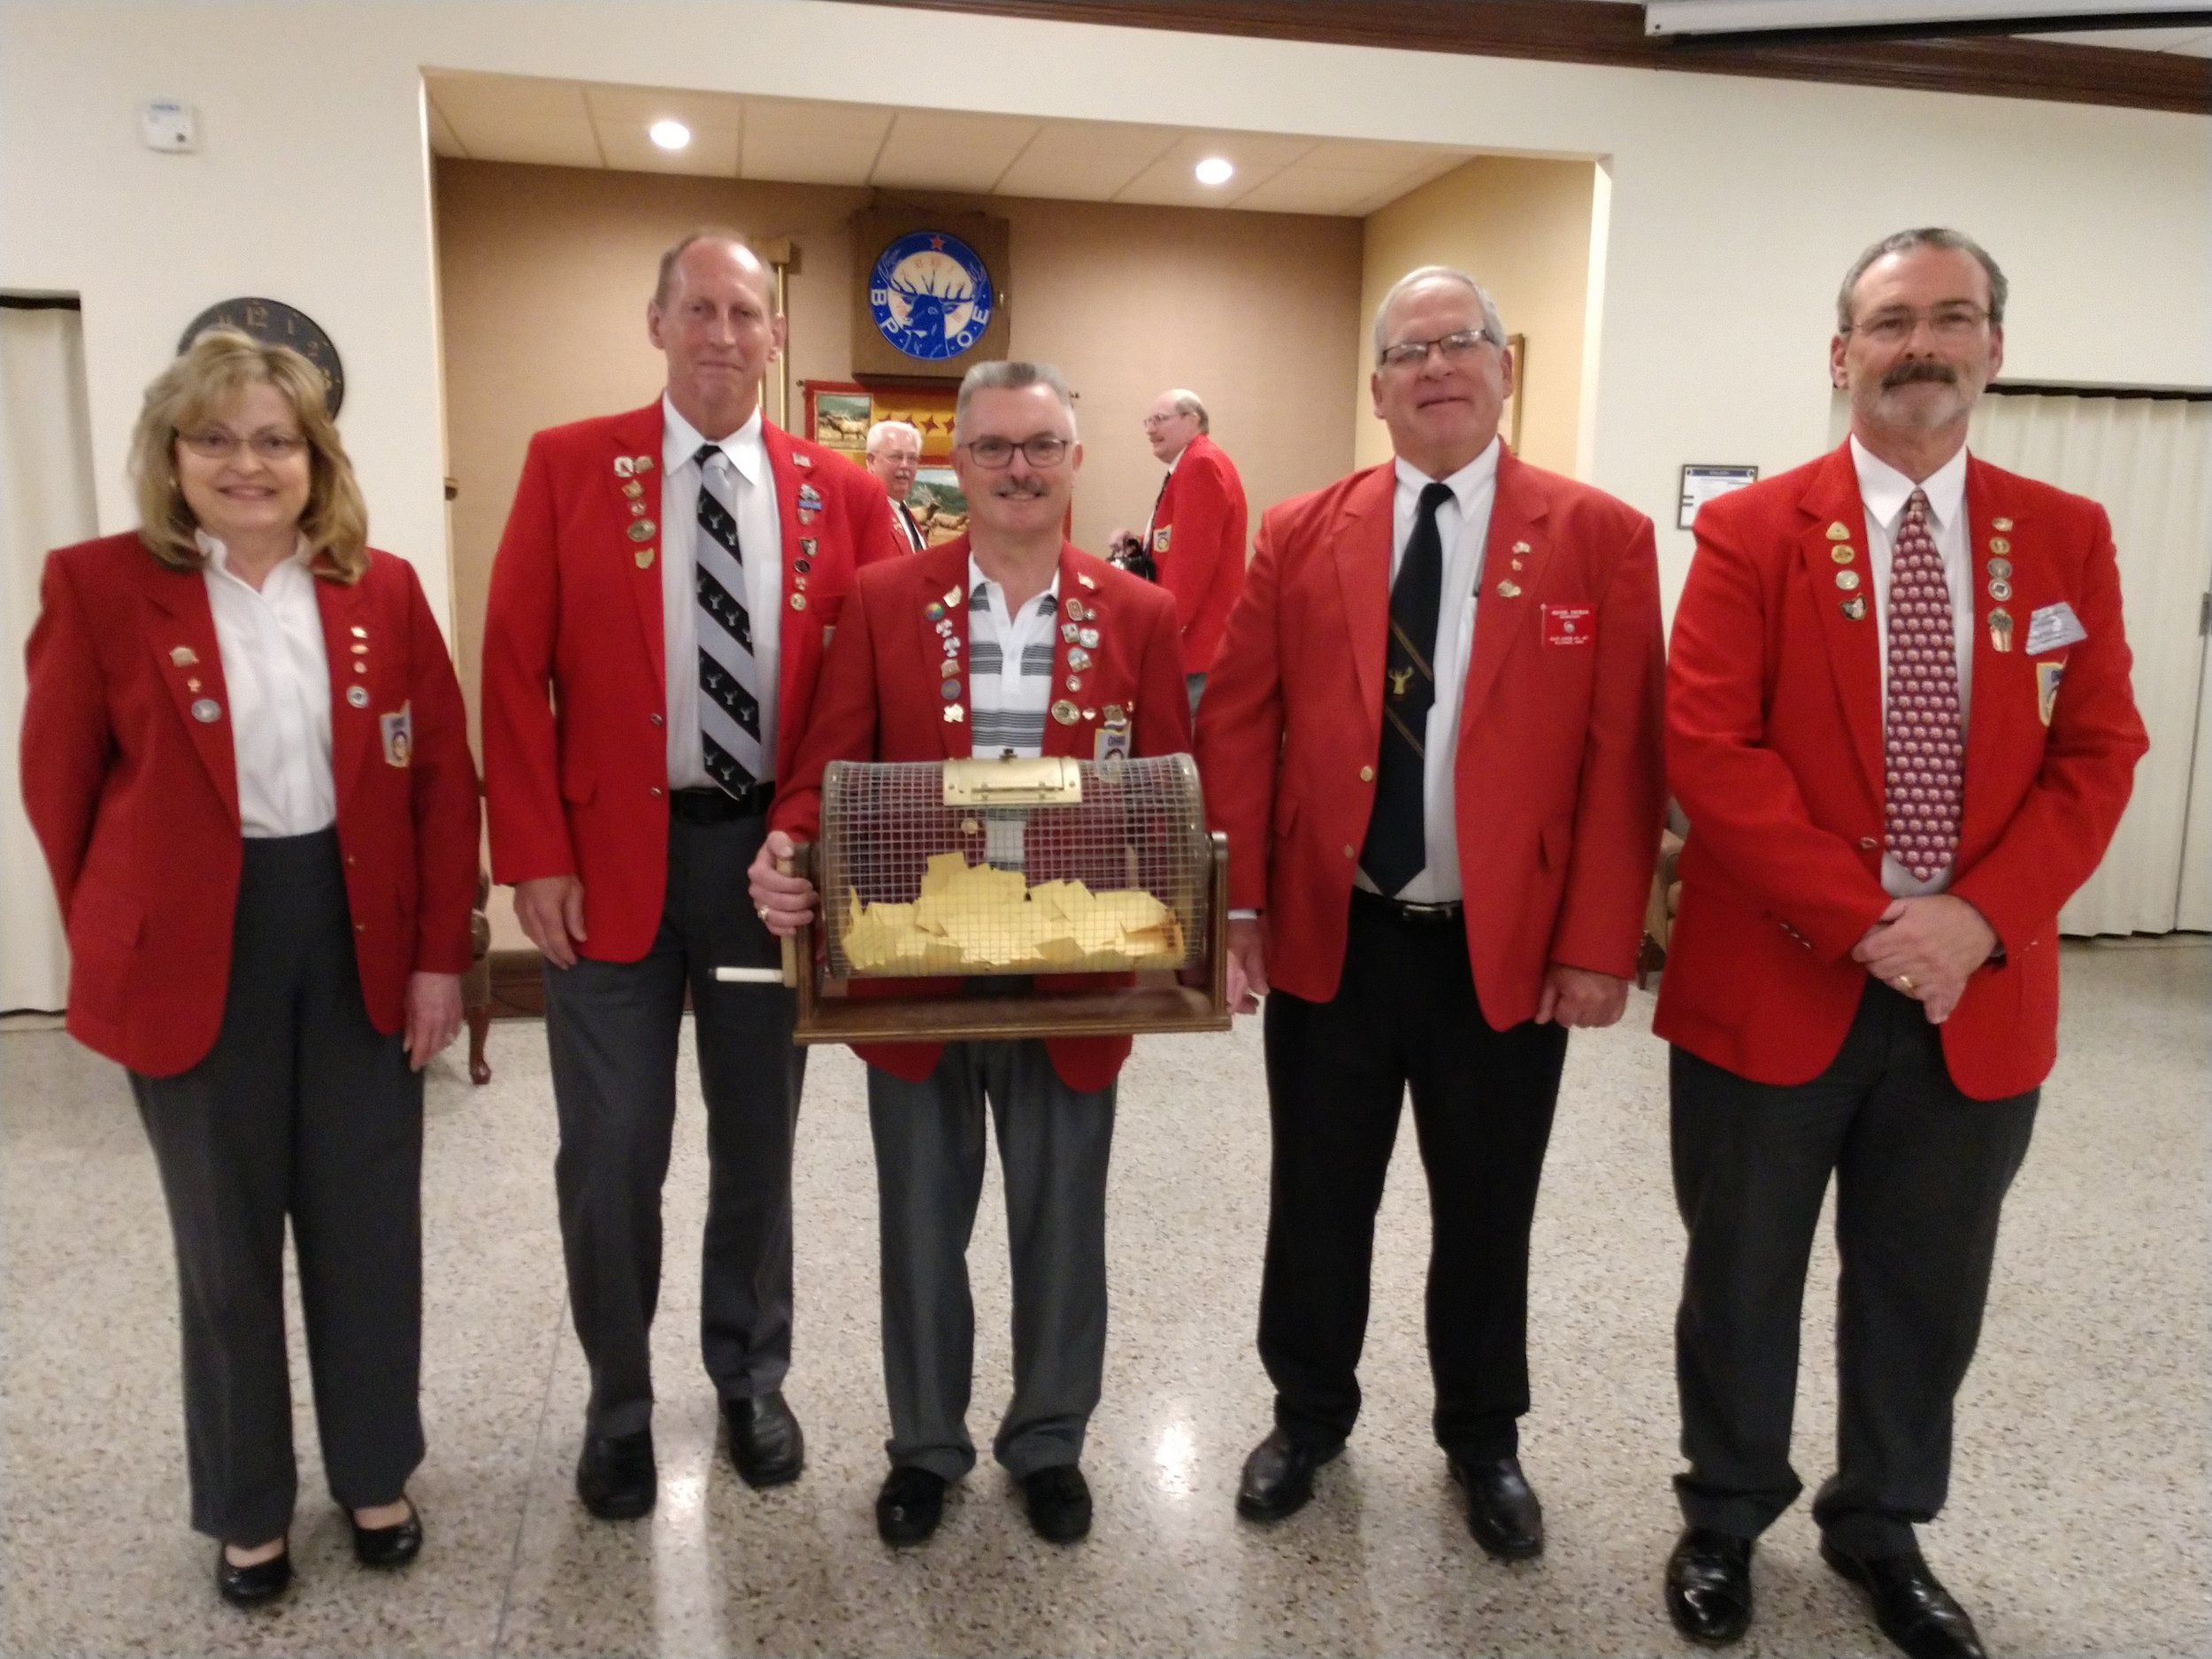 Pictured is Connie Smith, ER; Wayne Gorby, PER; Jeff Chapman, PER; winner Roger Yauman, Secretary at Alliance #467; Eddie Connors, PDDGER and OEA Trustee Chairman.